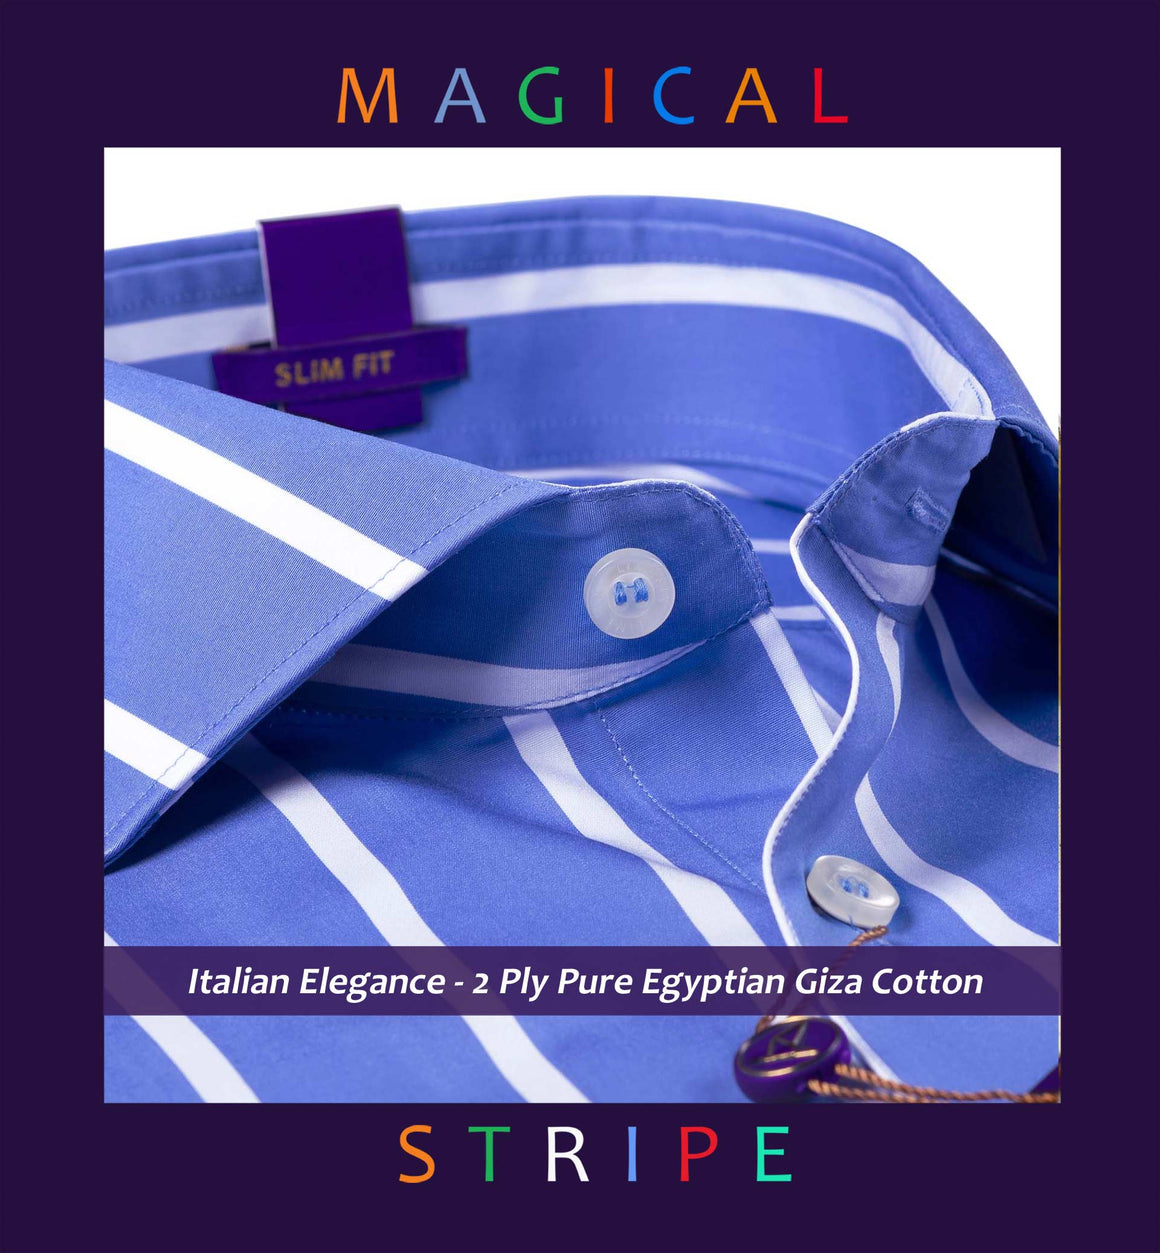 Manhattan- Cobalt Blue & White Magical Stripe